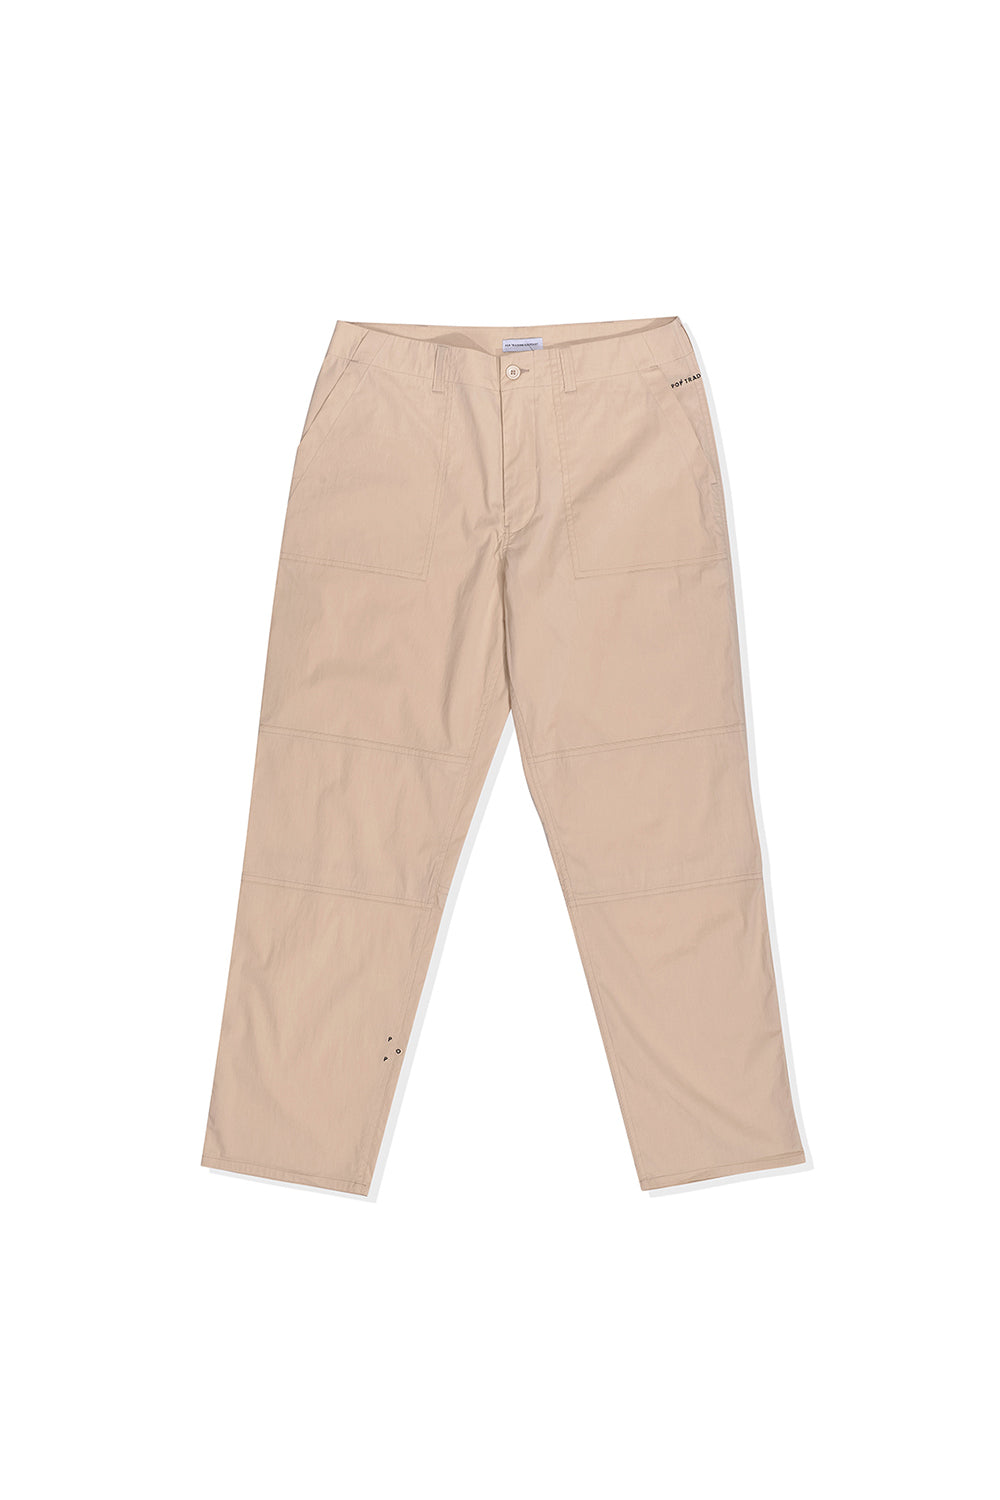 PHATIGUE FARM KNEE PANTS【POP TRADING COMPANY】